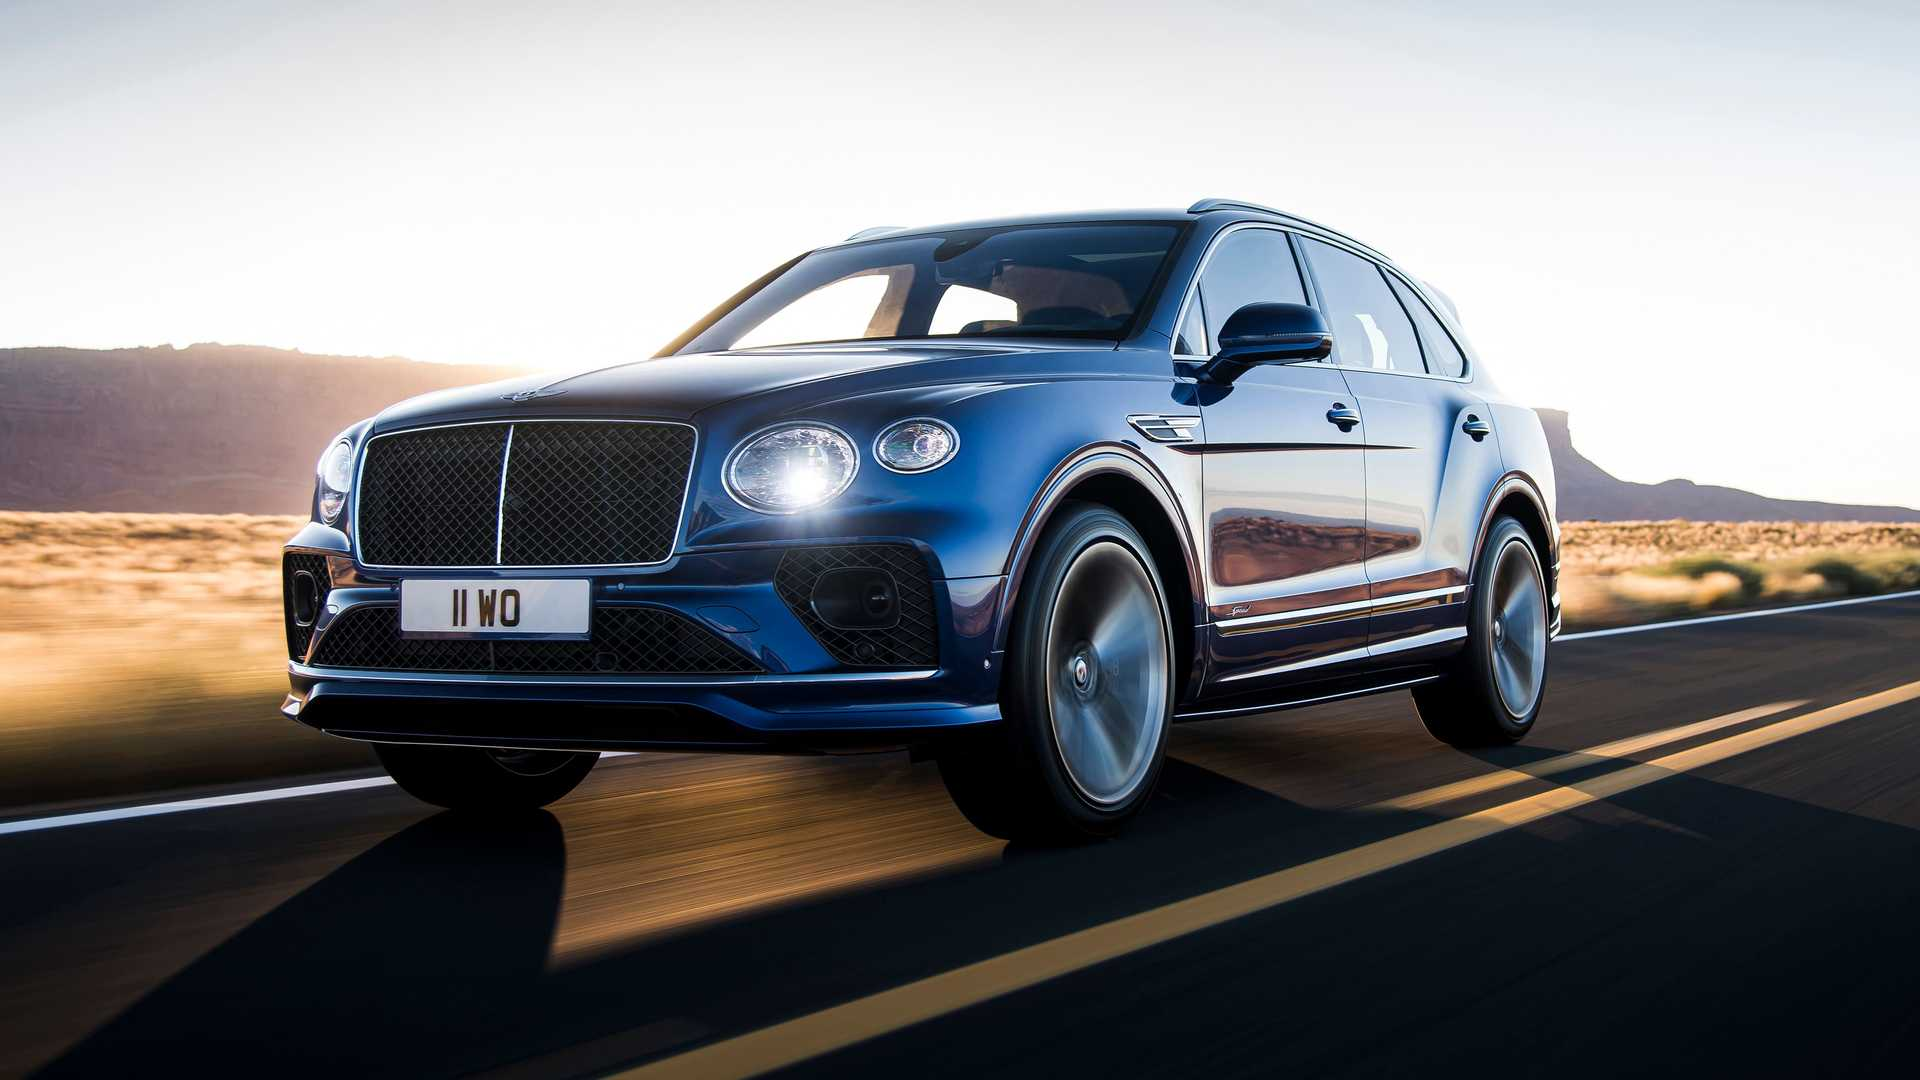 Updated 2021 Bentley Bentayga Speed still packs a 626-bhp W12 wallop